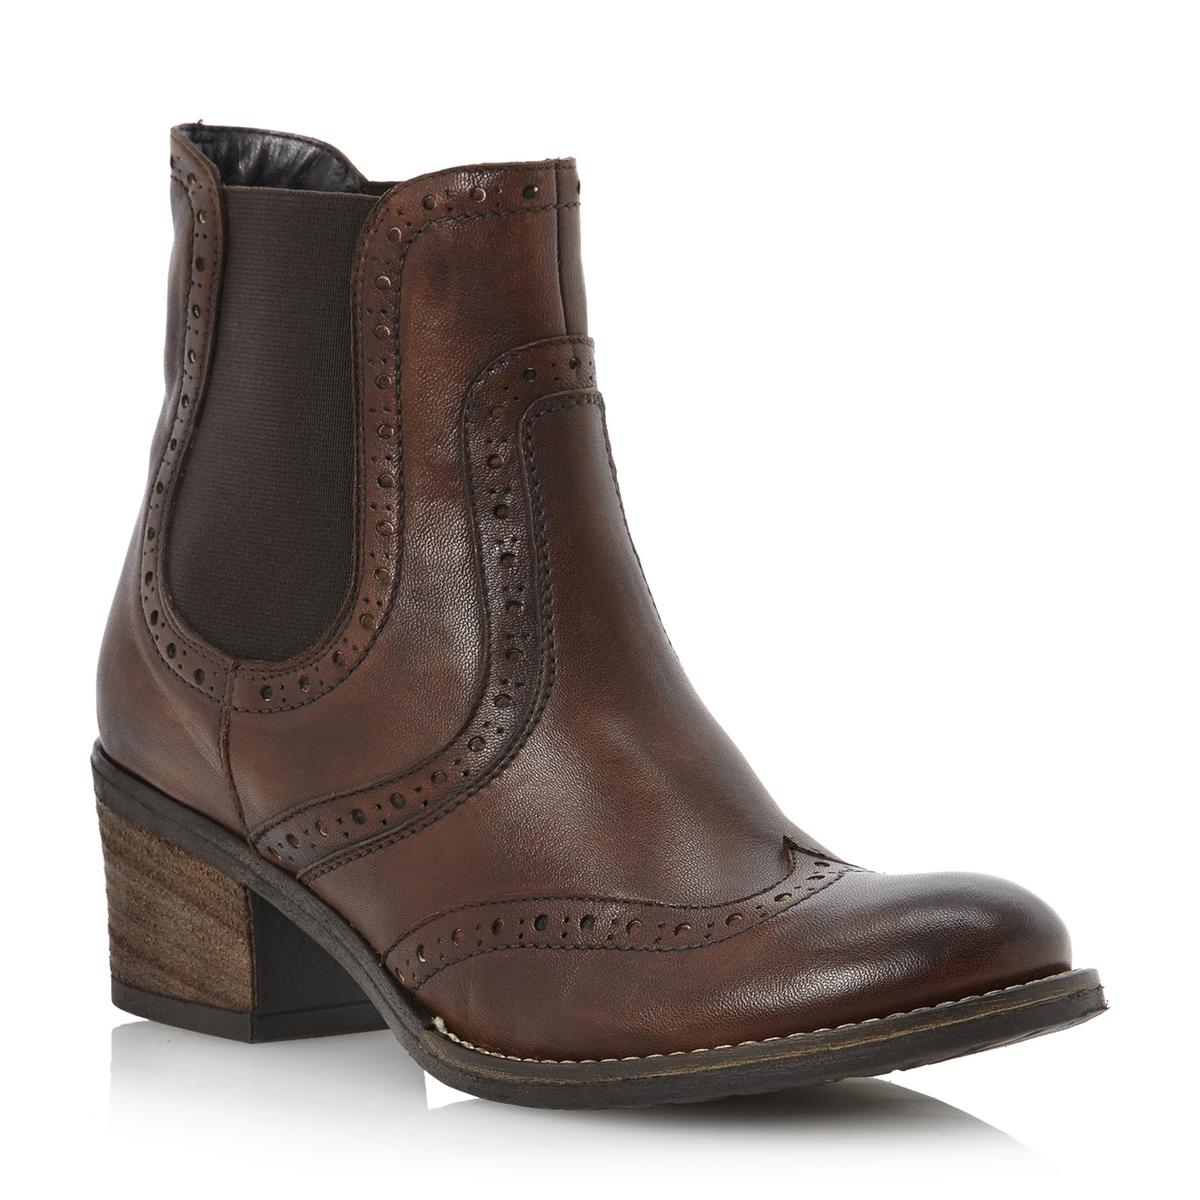 Find great deals on eBay for brogue boots women. Shop with confidence.